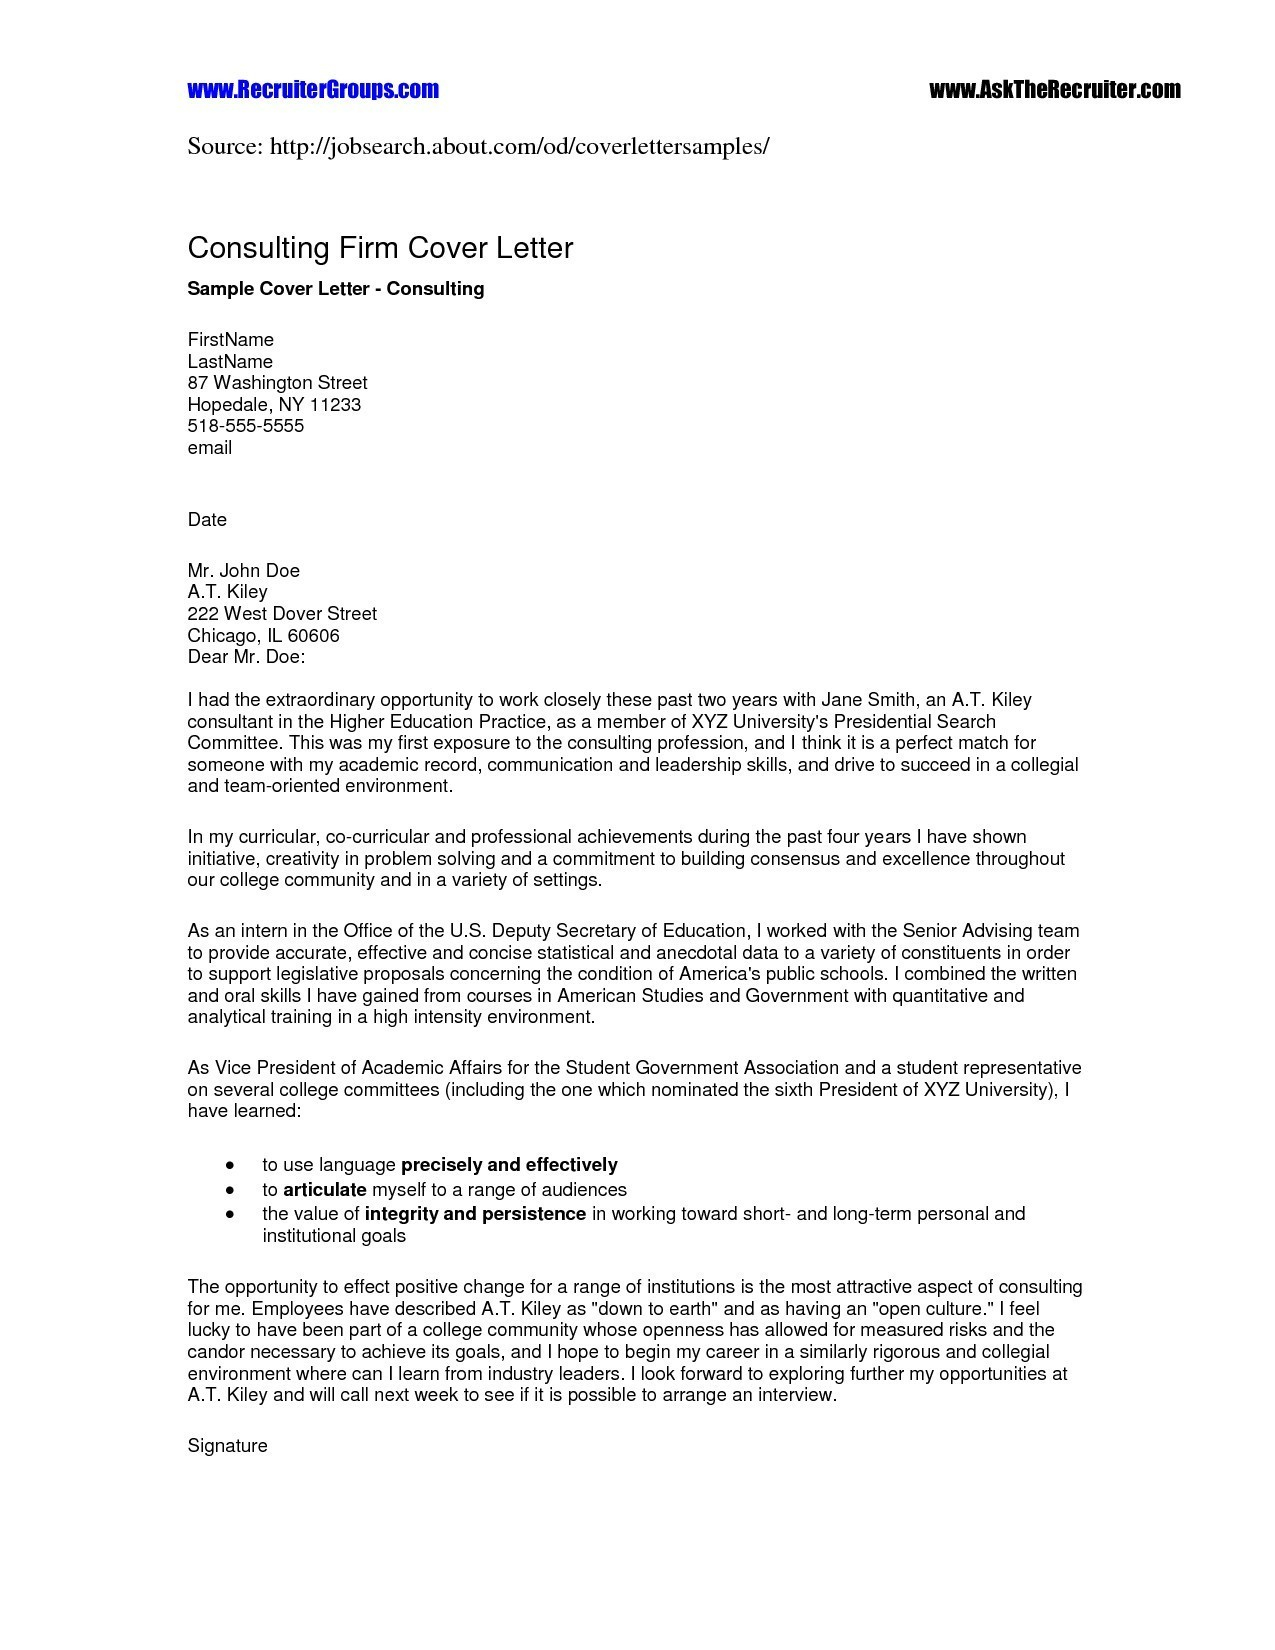 formal business letter template business cover letter format sample fresh format business cover